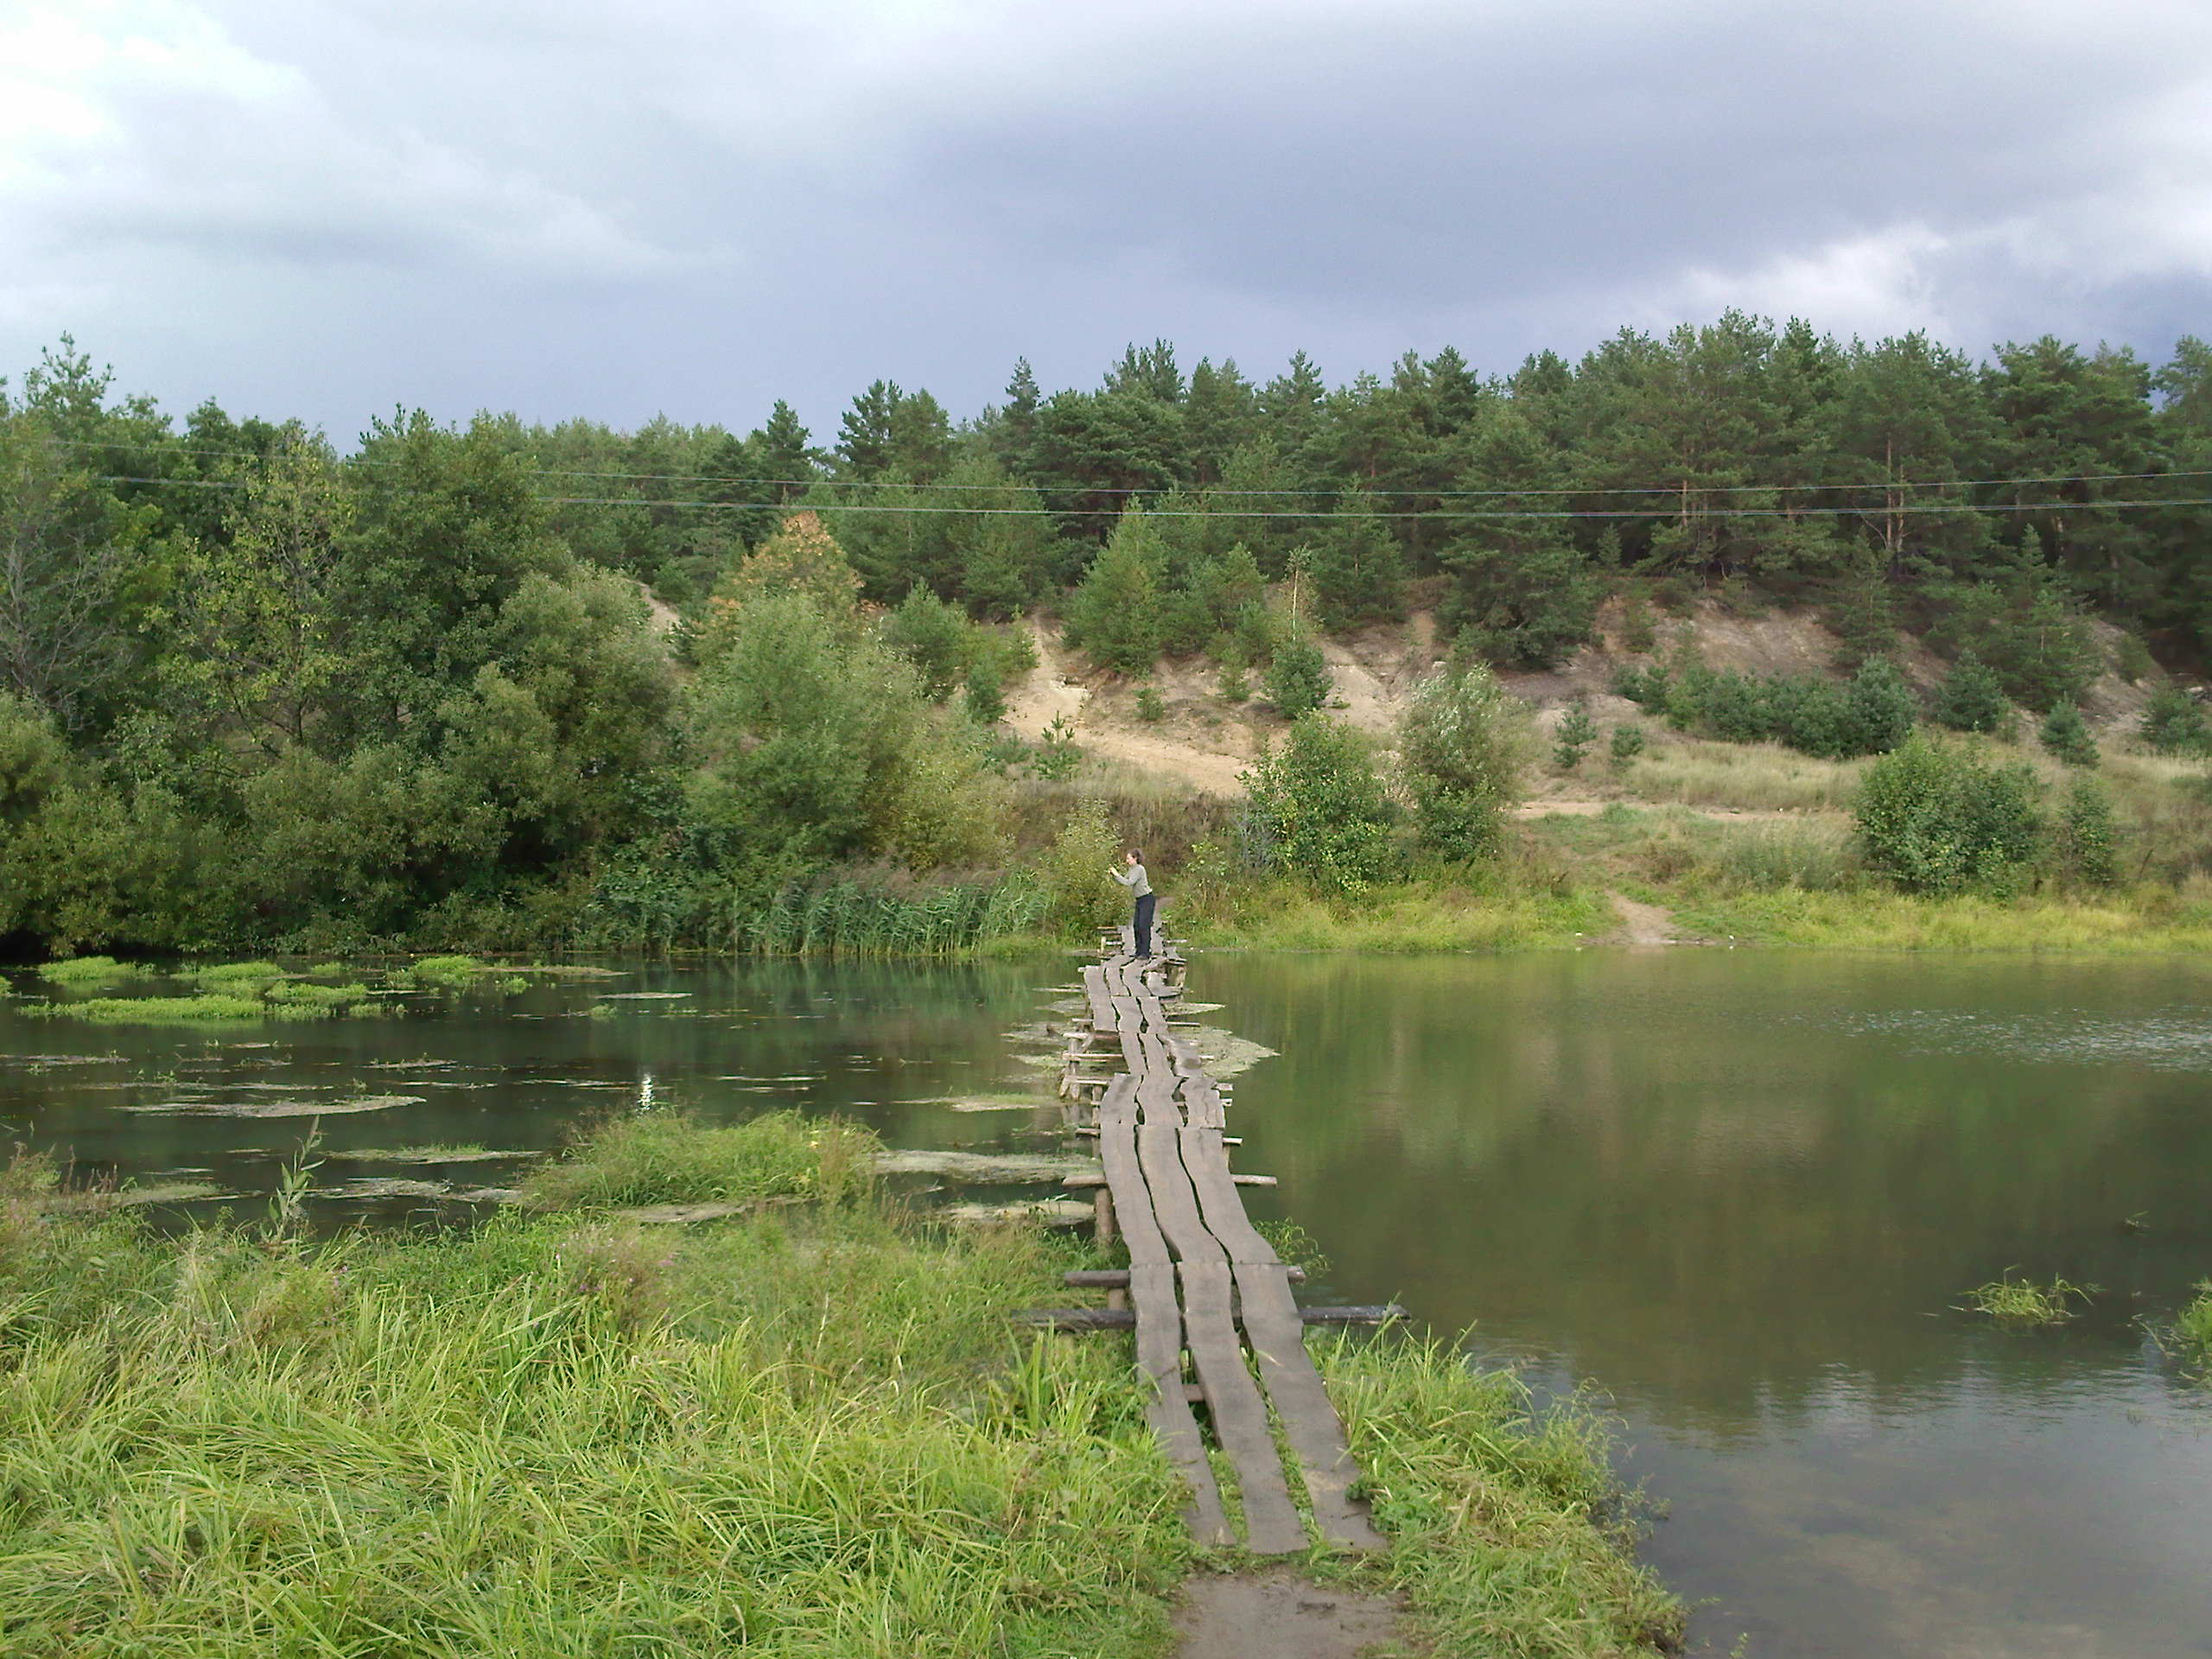 Russian Village: On the wooden bridge